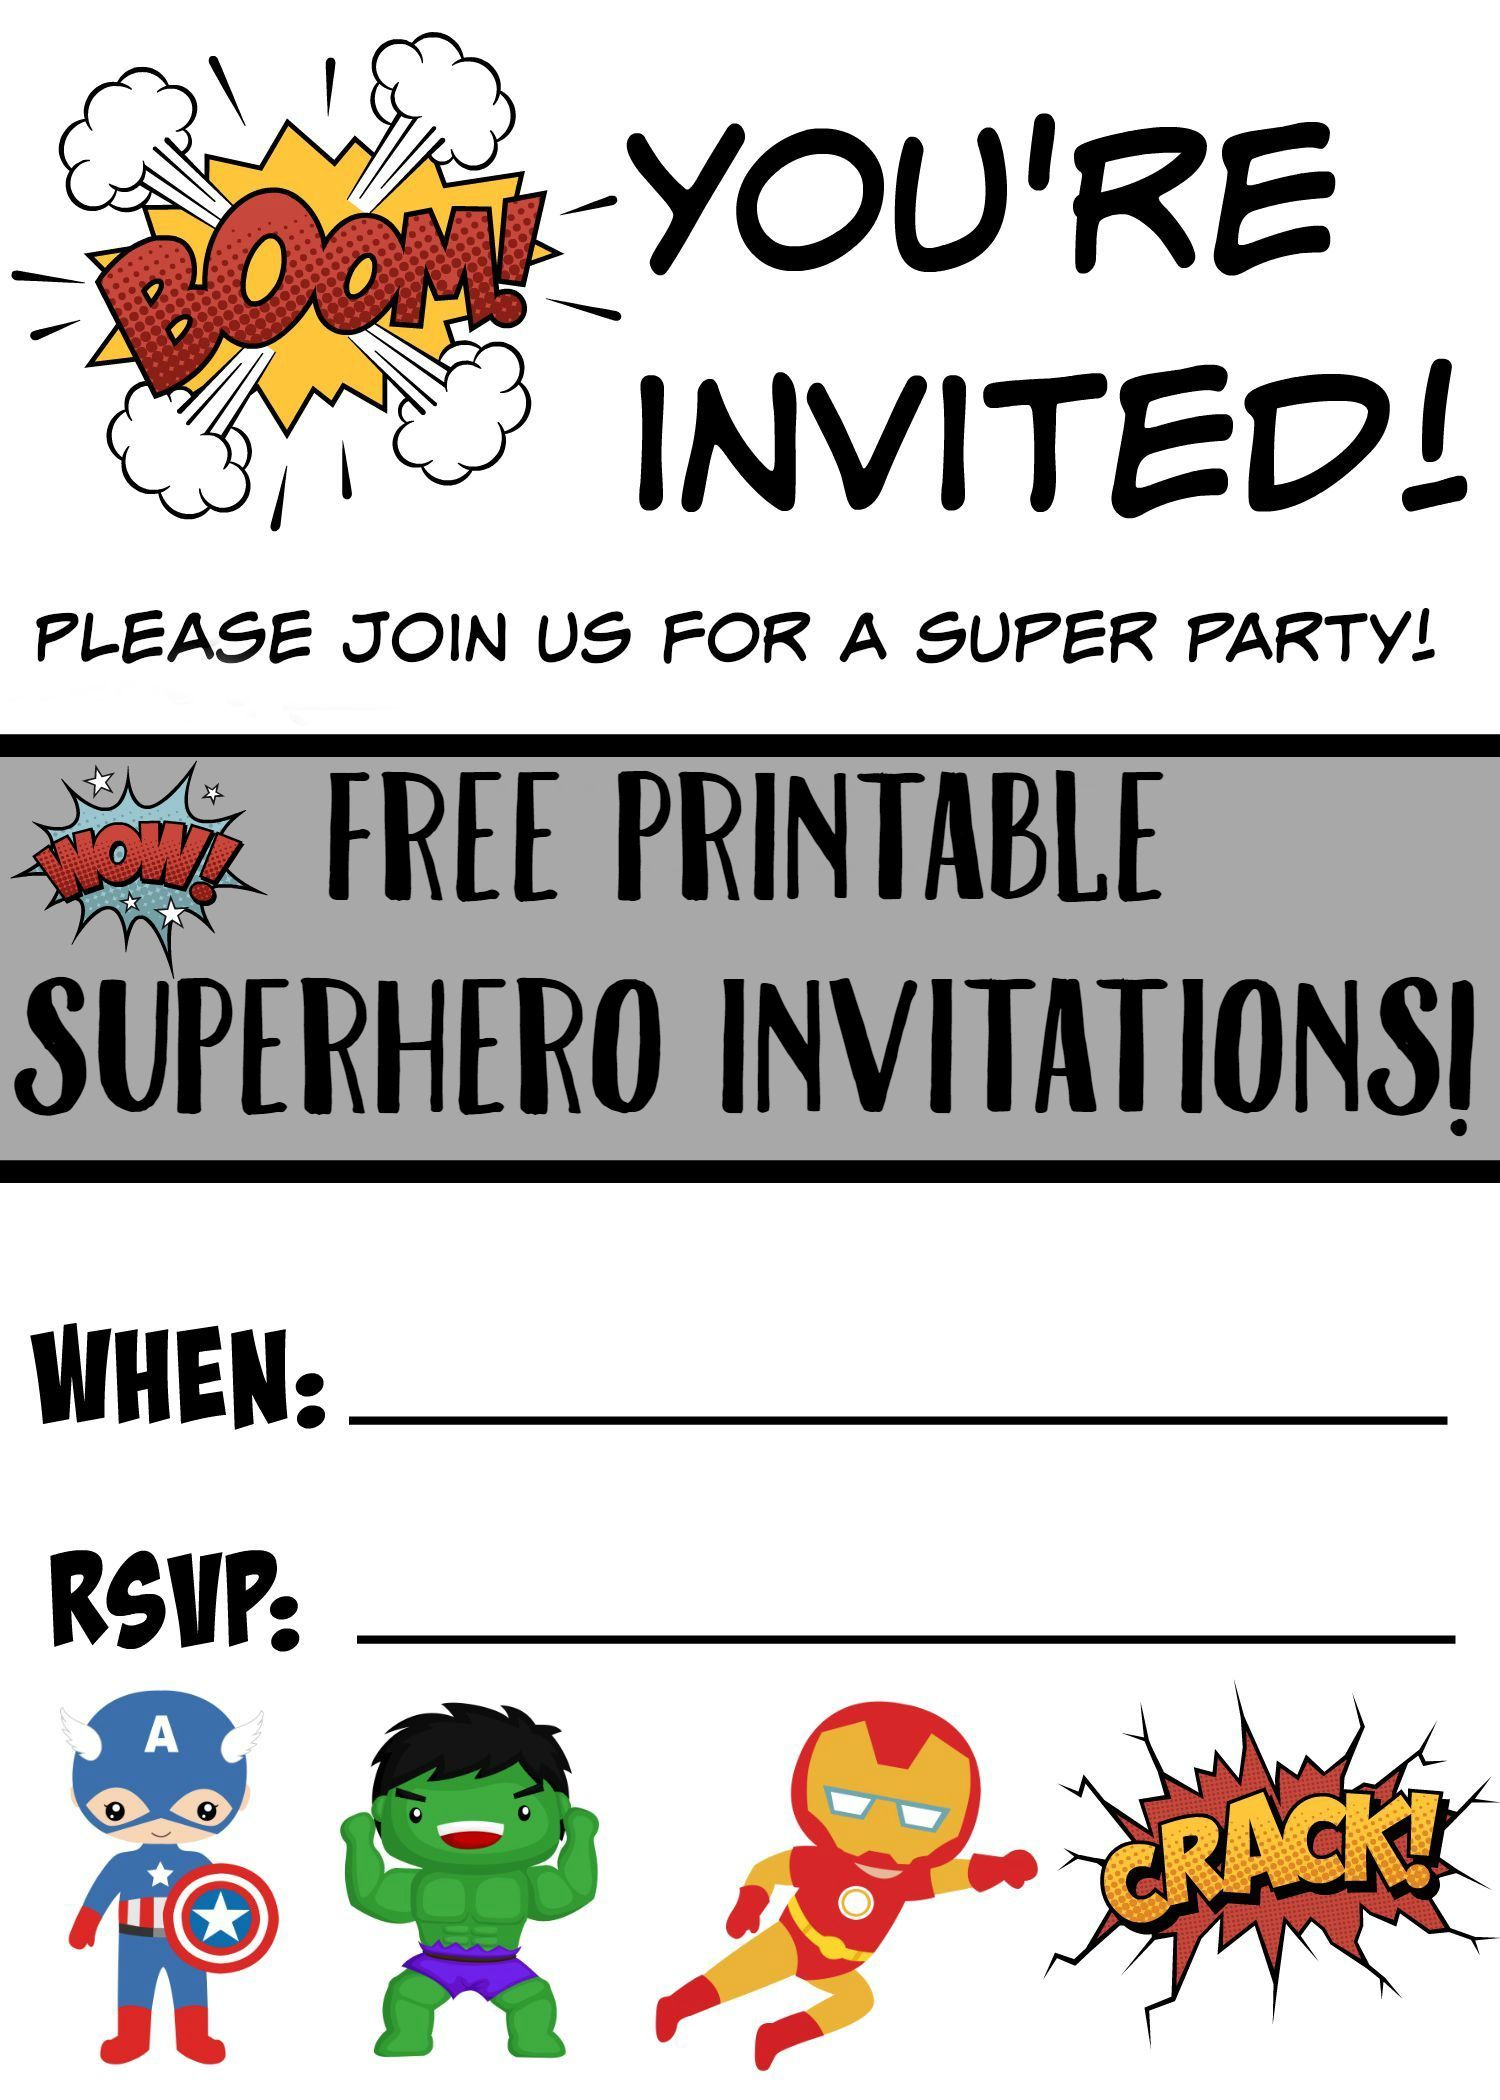 image about Free Printable Superhero Birthday Cards identified as Absolutely free Printable Superhero Birthday Invites Superheroes